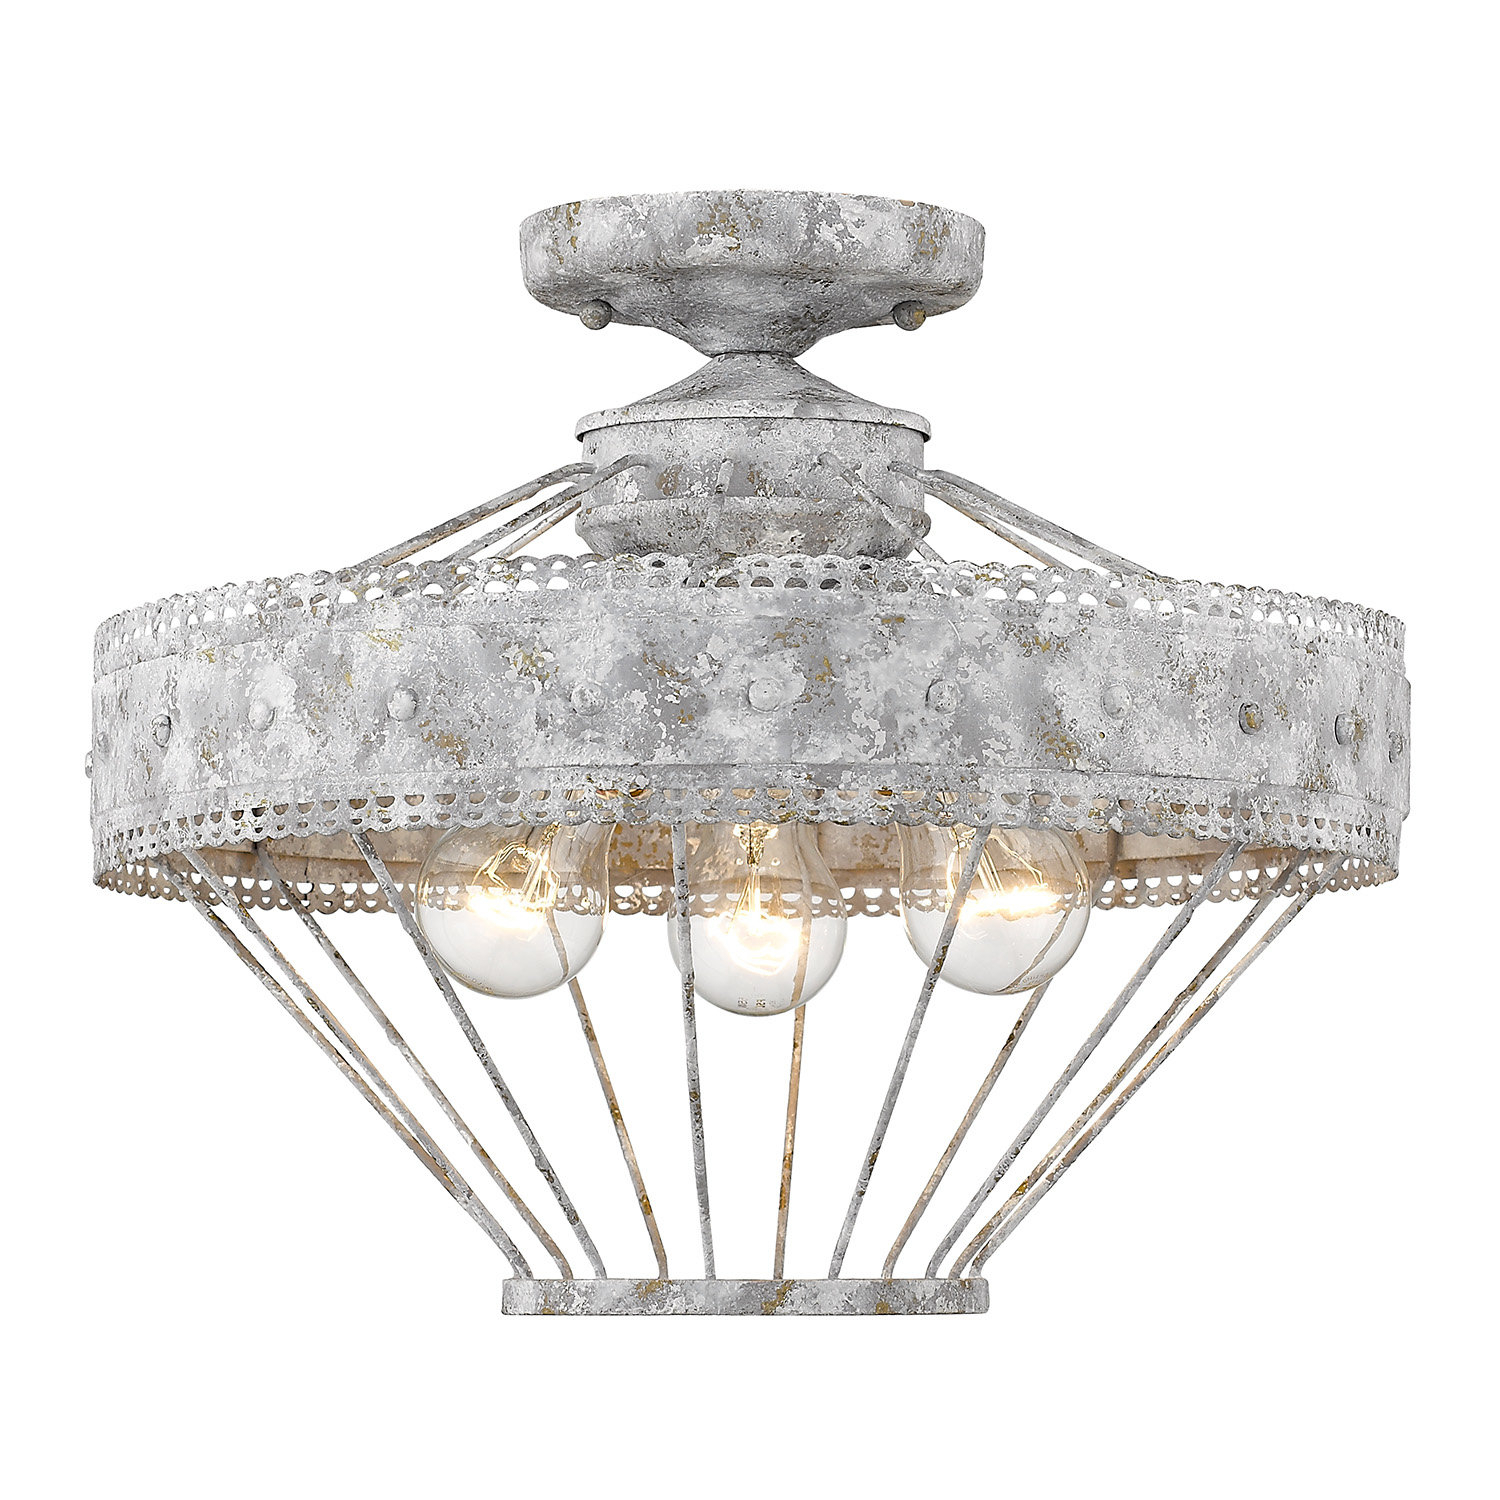 Cleo 3-Light Semi Flush Mount in Clea 3-Light Crystal Chandeliers (Image 7 of 30)